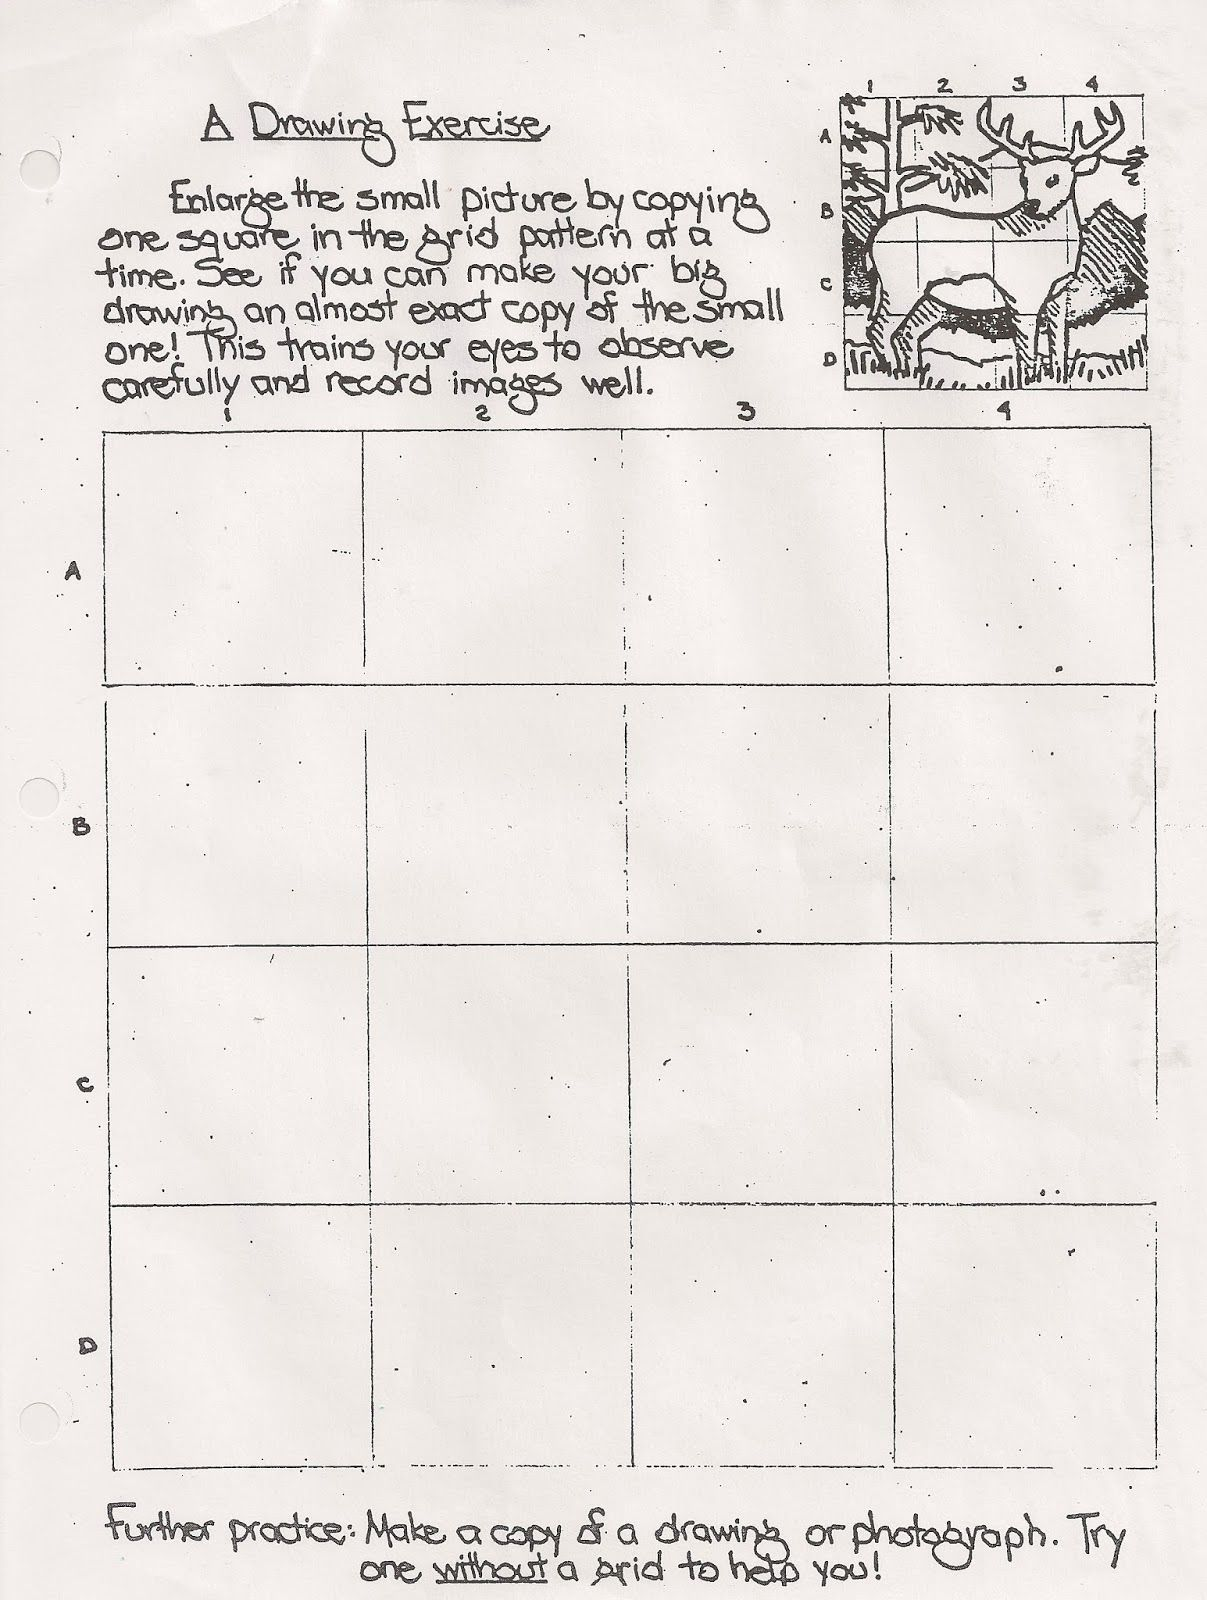 No Corner Suns Drawing Exercise Worksheet Handout Useful Grid Exercise Drawing Practice Of A